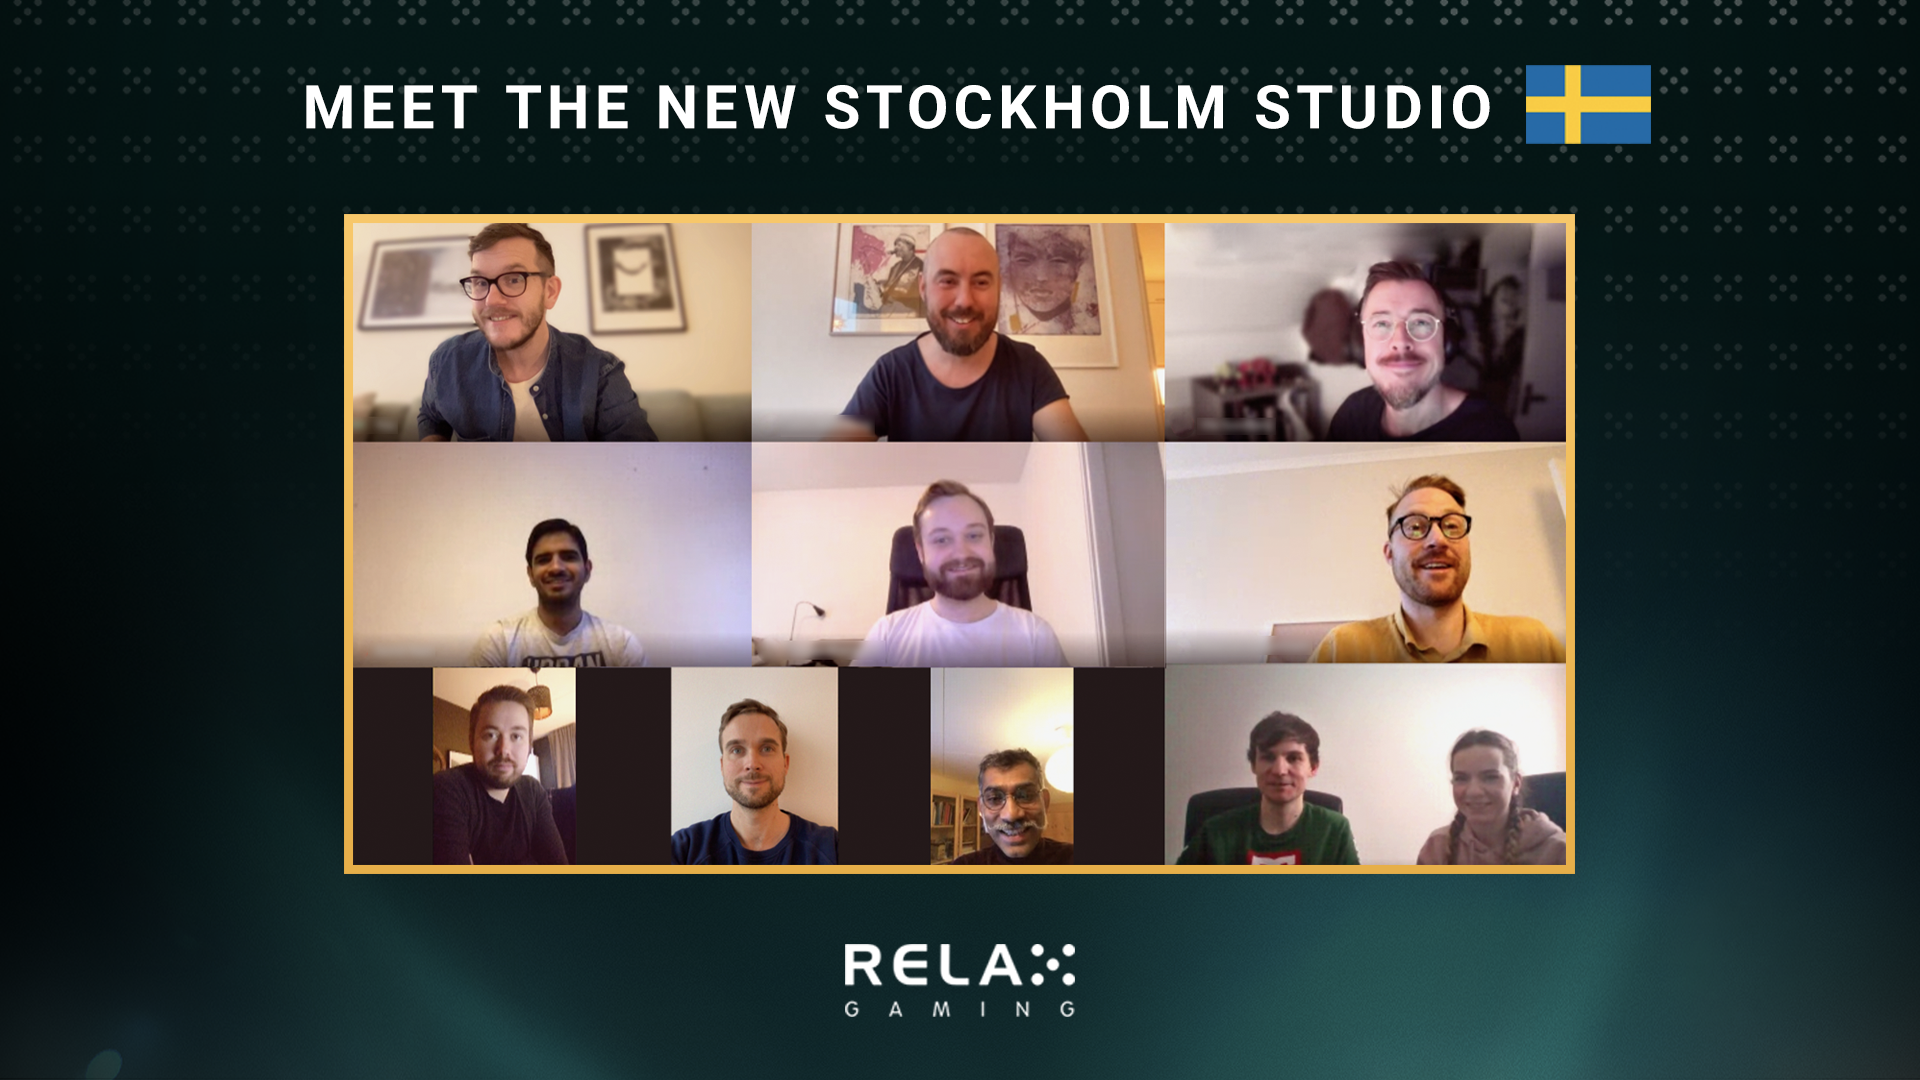 Say hallå to the new Stockholm team